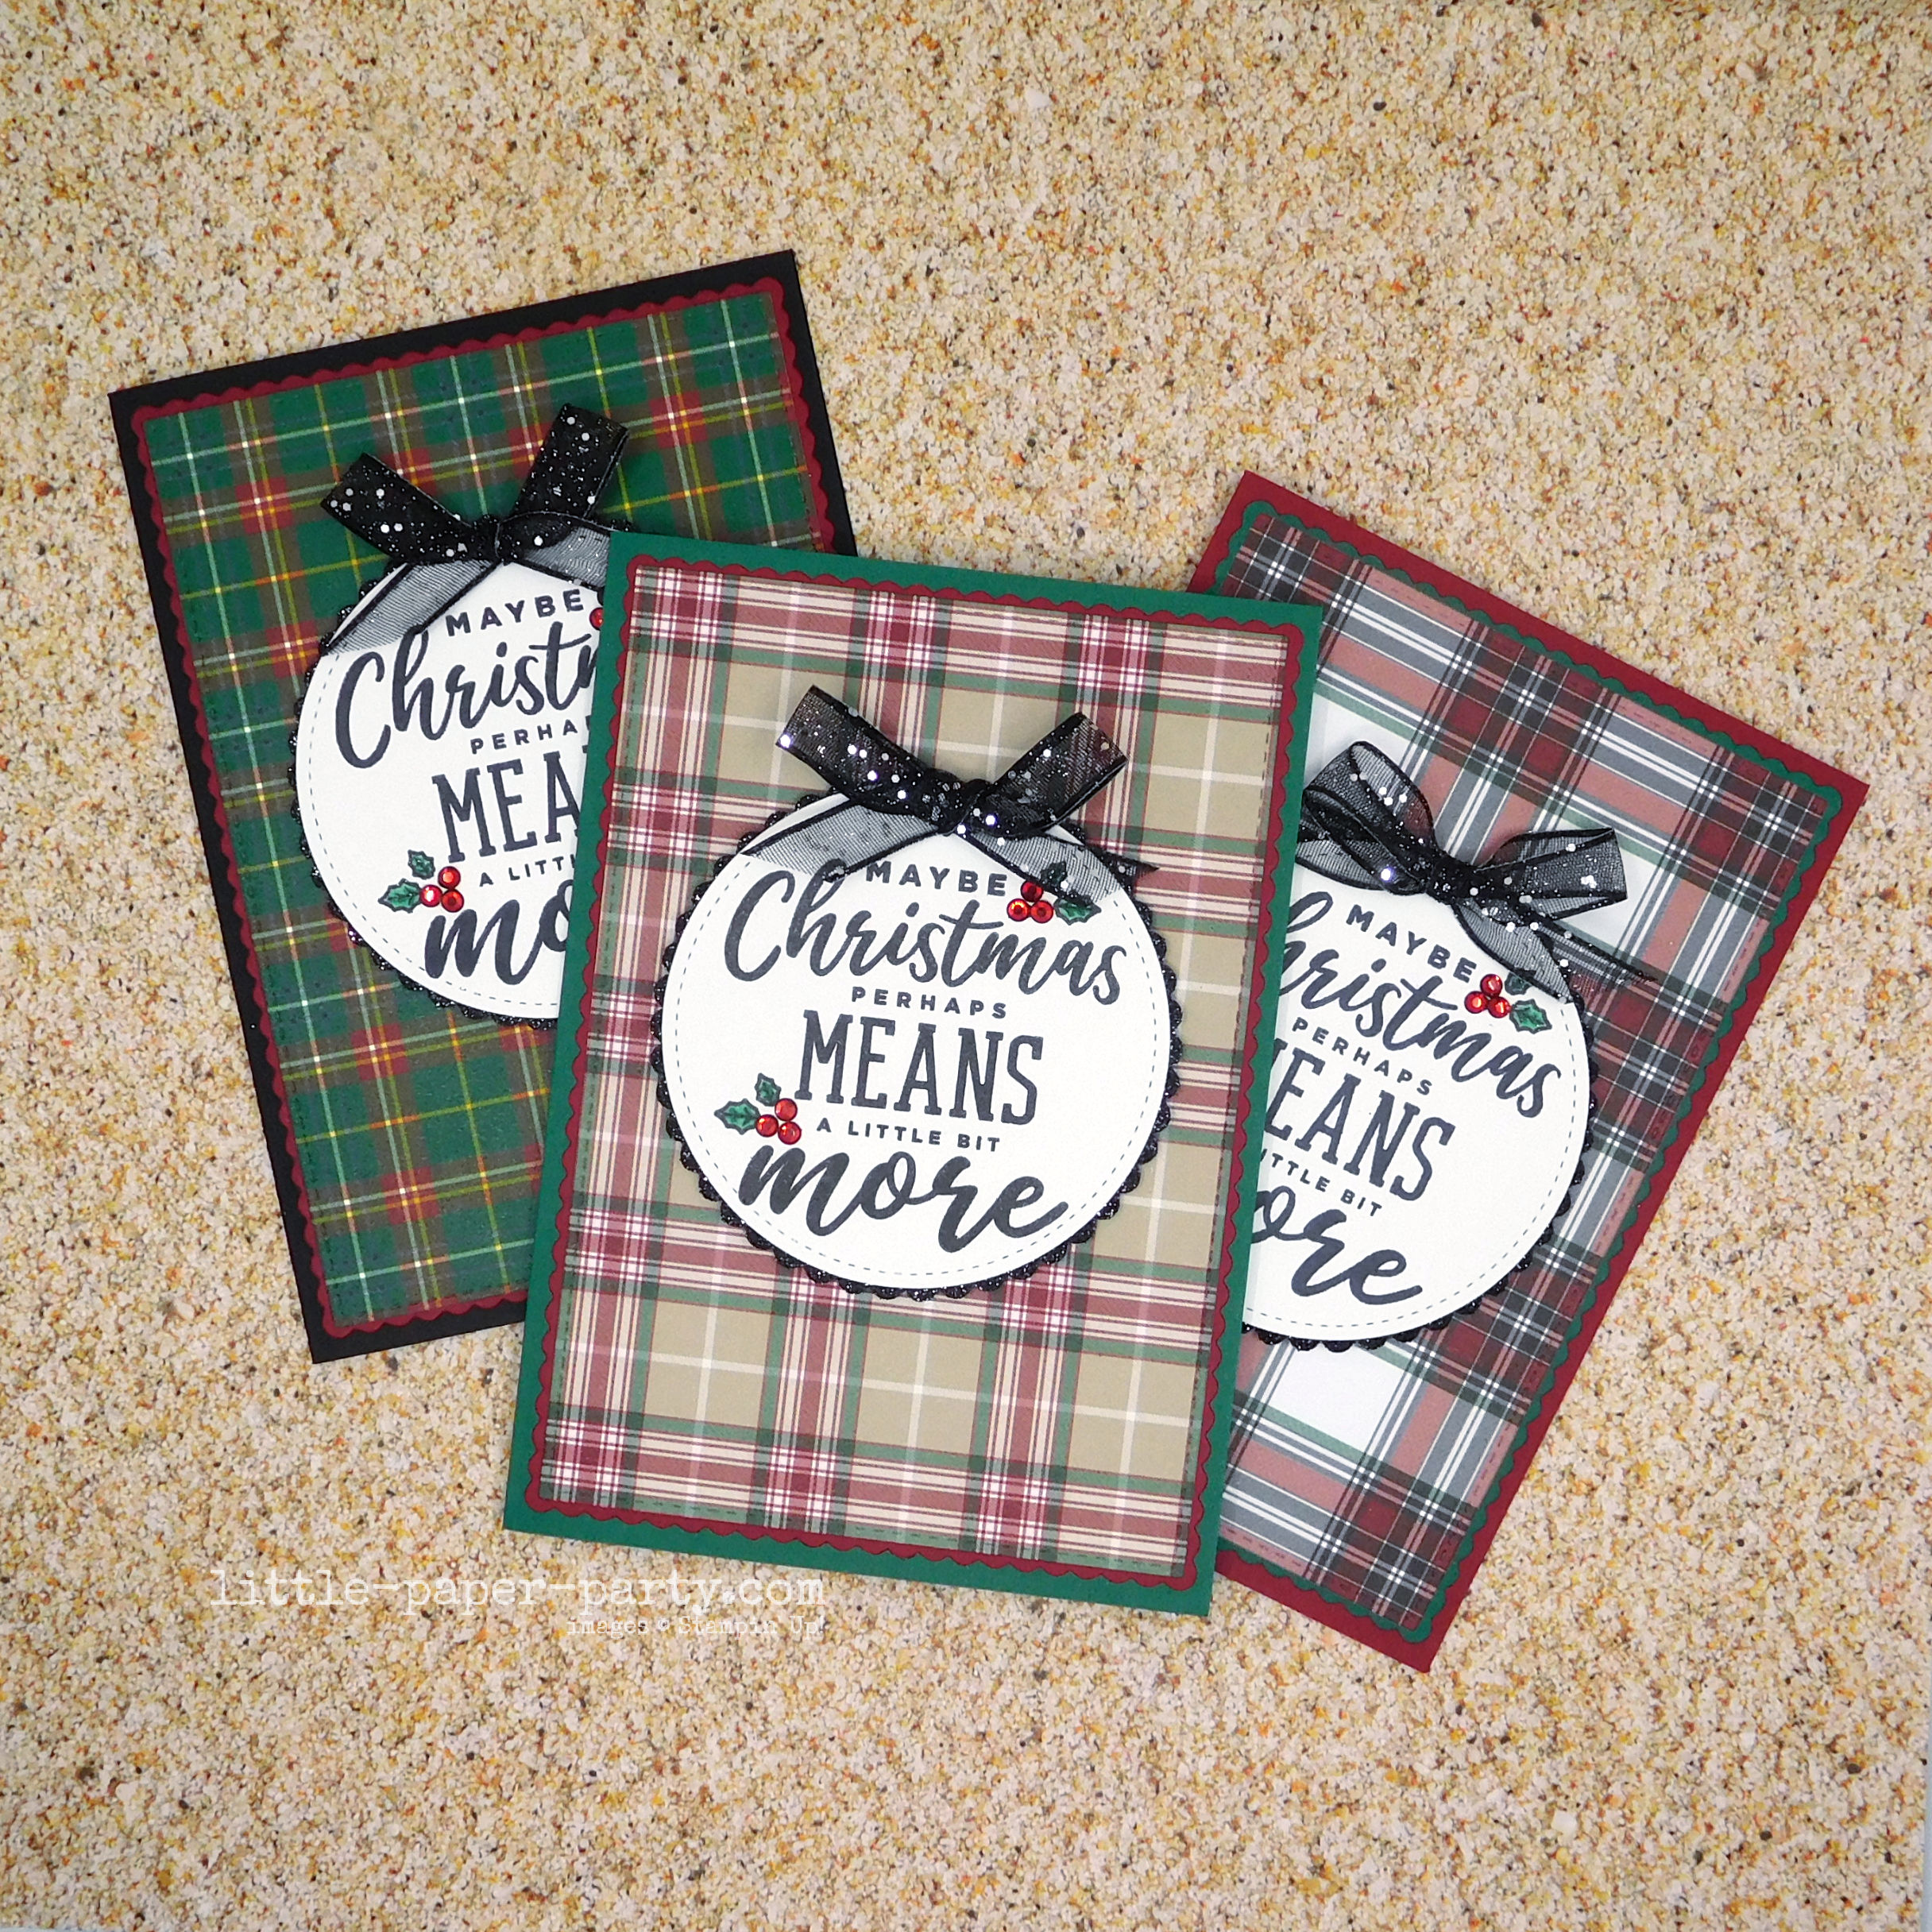 Little Paper Party, 12 Days of Christmas 2020 - Stamp-A-Stack #1, 1